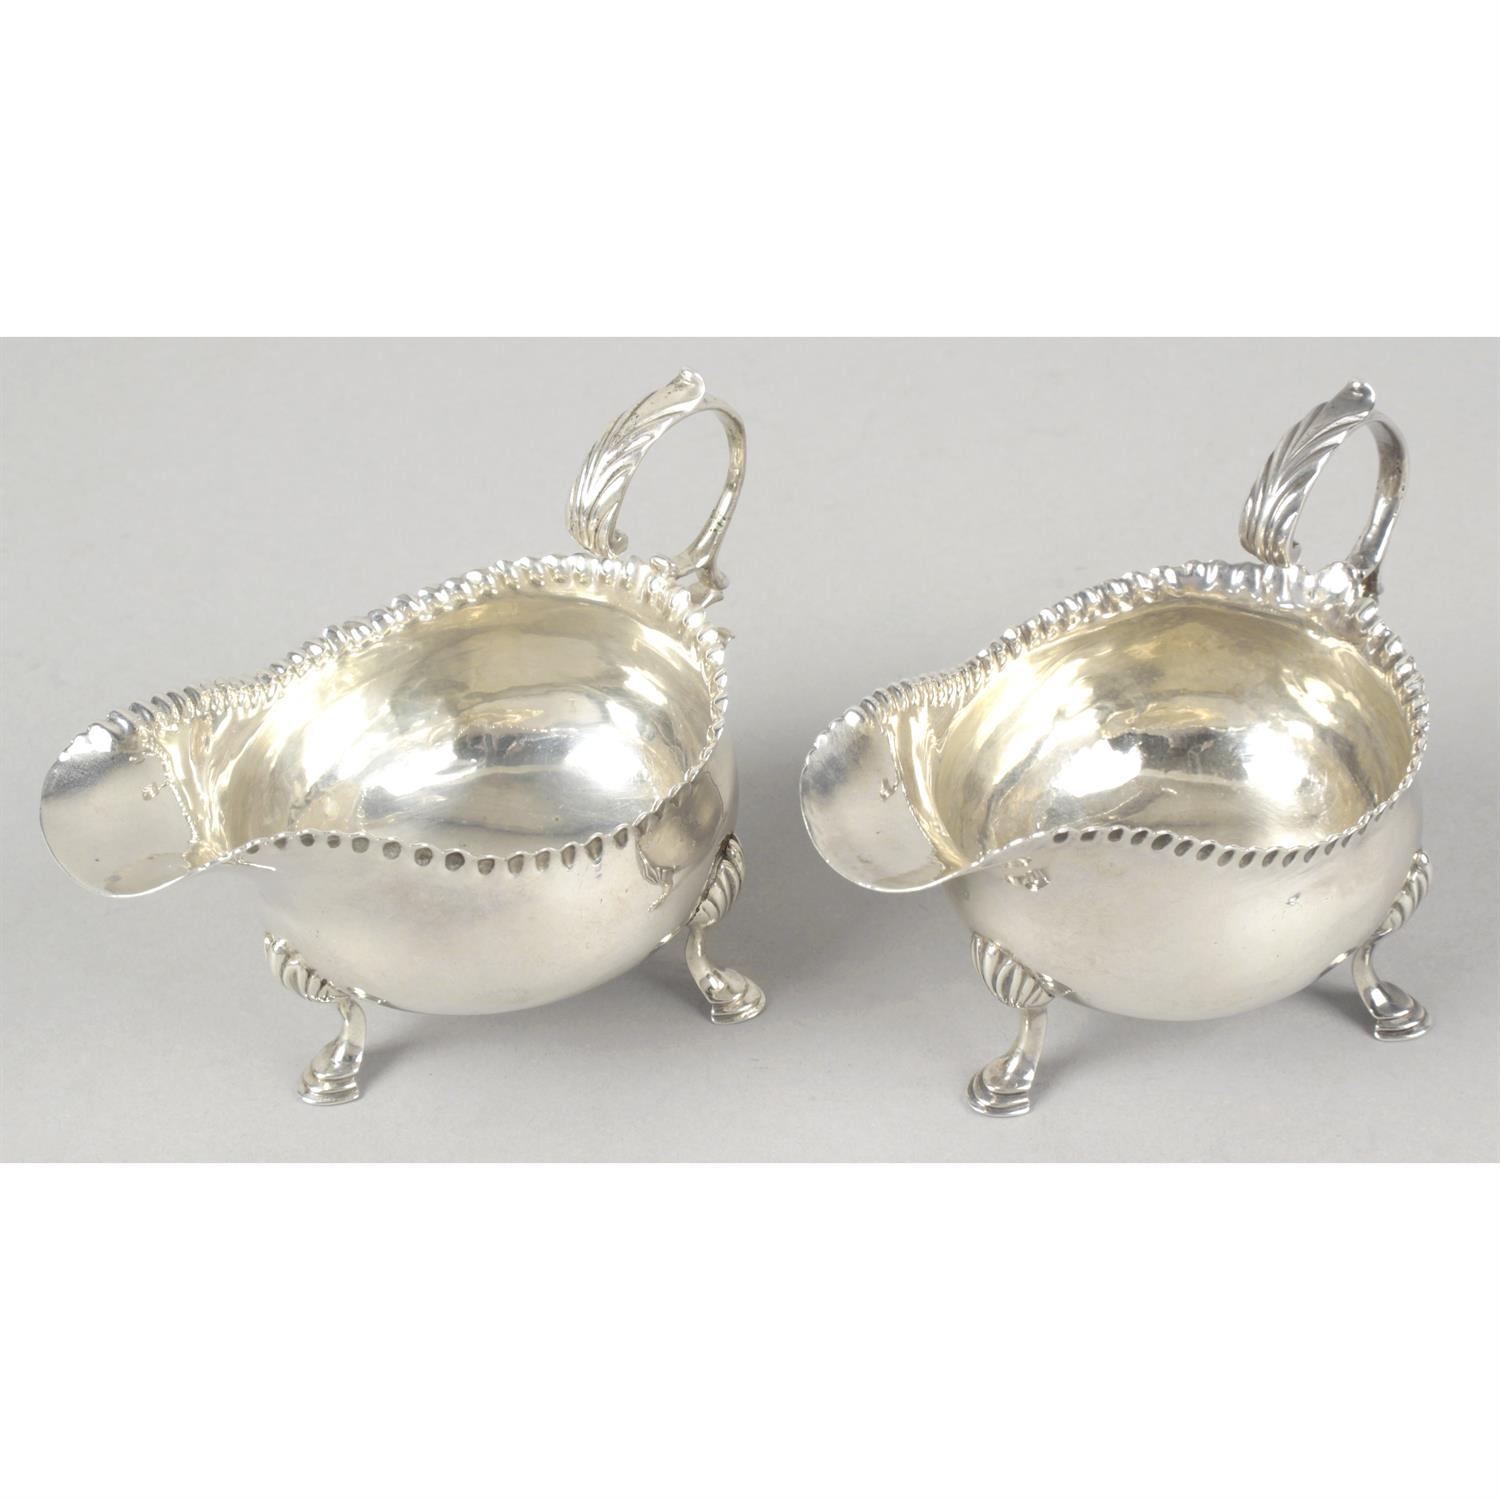 A pair of George III small silver sauce boats by Hester Bateman.